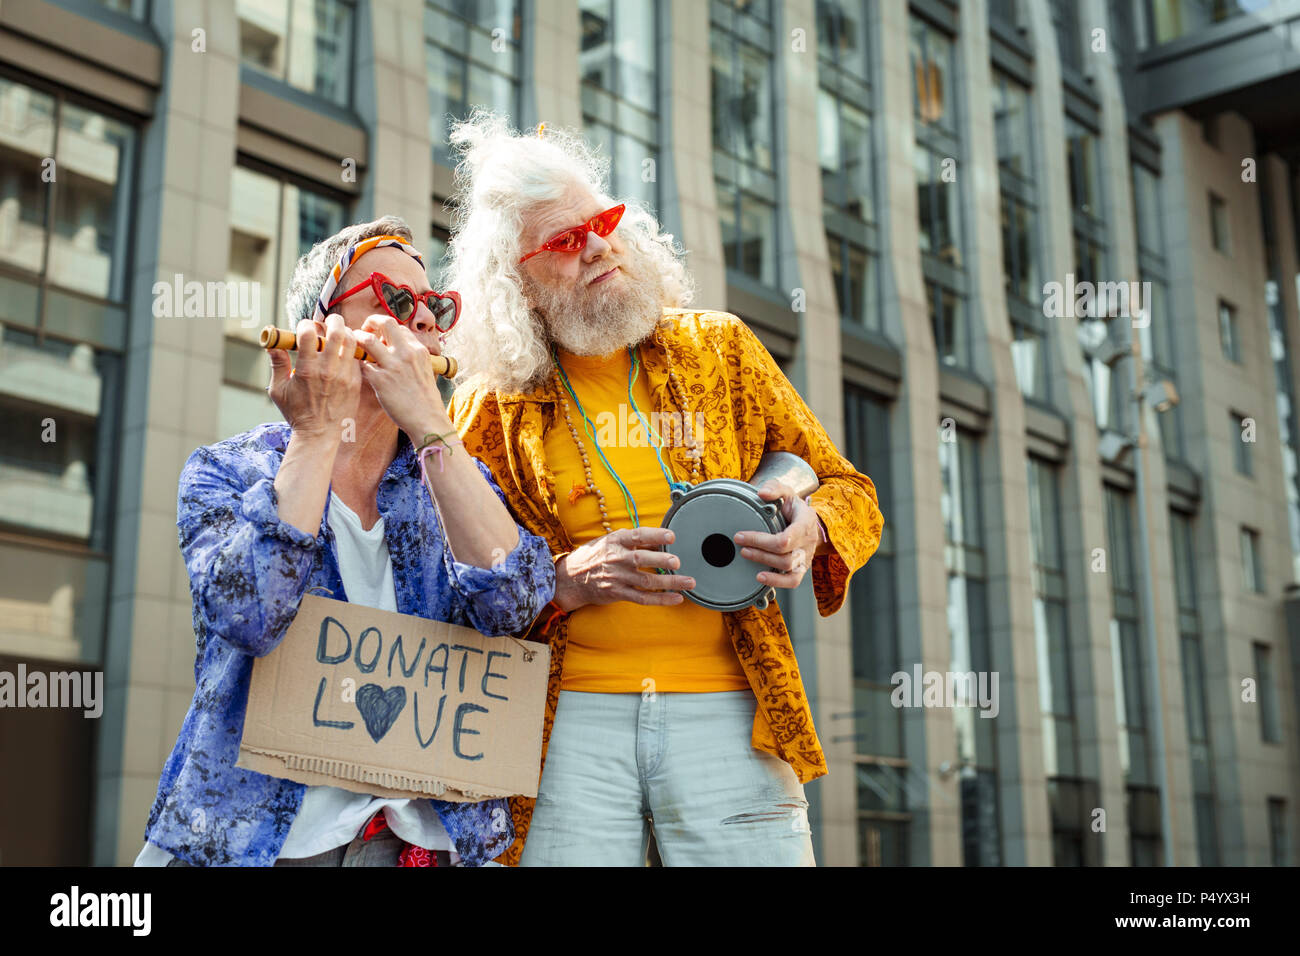 Two inspired hippies acting in street performance - Stock Image